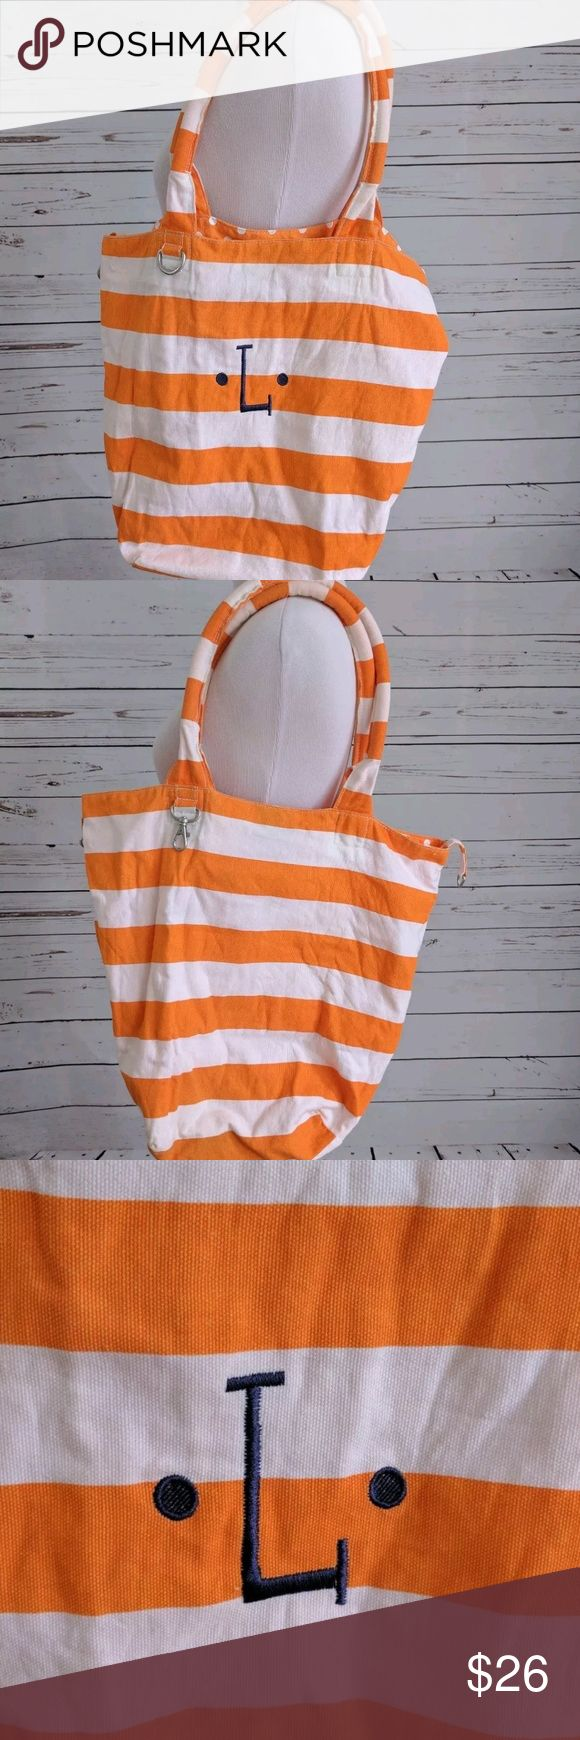 THIRTY-ONE | monogrammed orange tote Orange and white striped Thirty-One canvas tote bag with padded handles. Interior in orange with white polkadots. There is a navy blue L monogrammed on the front. Bag has a square bottom and an inside mesh zippered pocket, zipper functions.   MEASUREMENTS:   Bottom square: 9x9 inches  Depth: 14 inches  handles: 22 inches Thirty-one Bags Totes